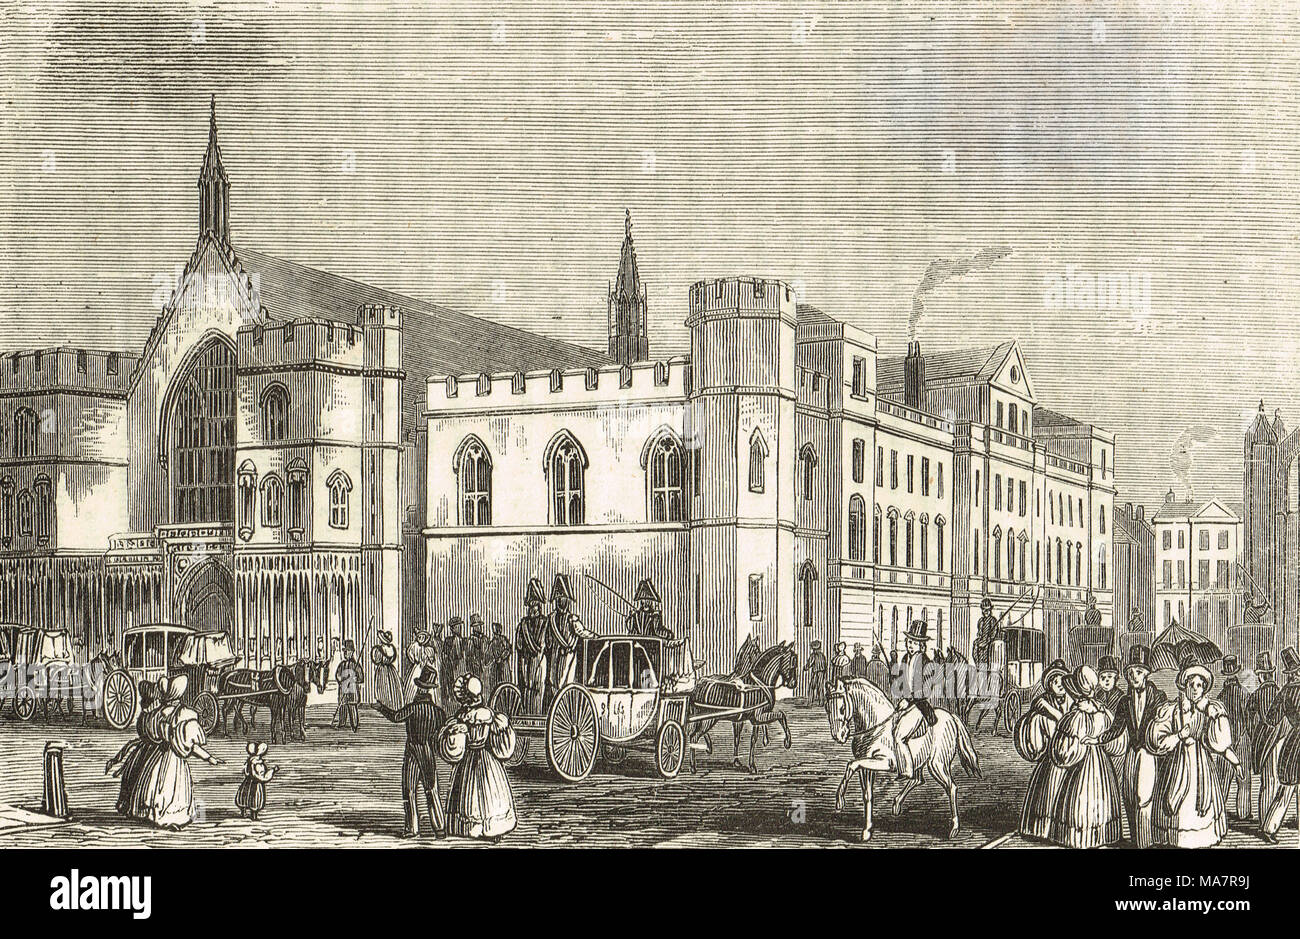 The Old House of lords and Commons, Pre fire of 1834 - Stock Image